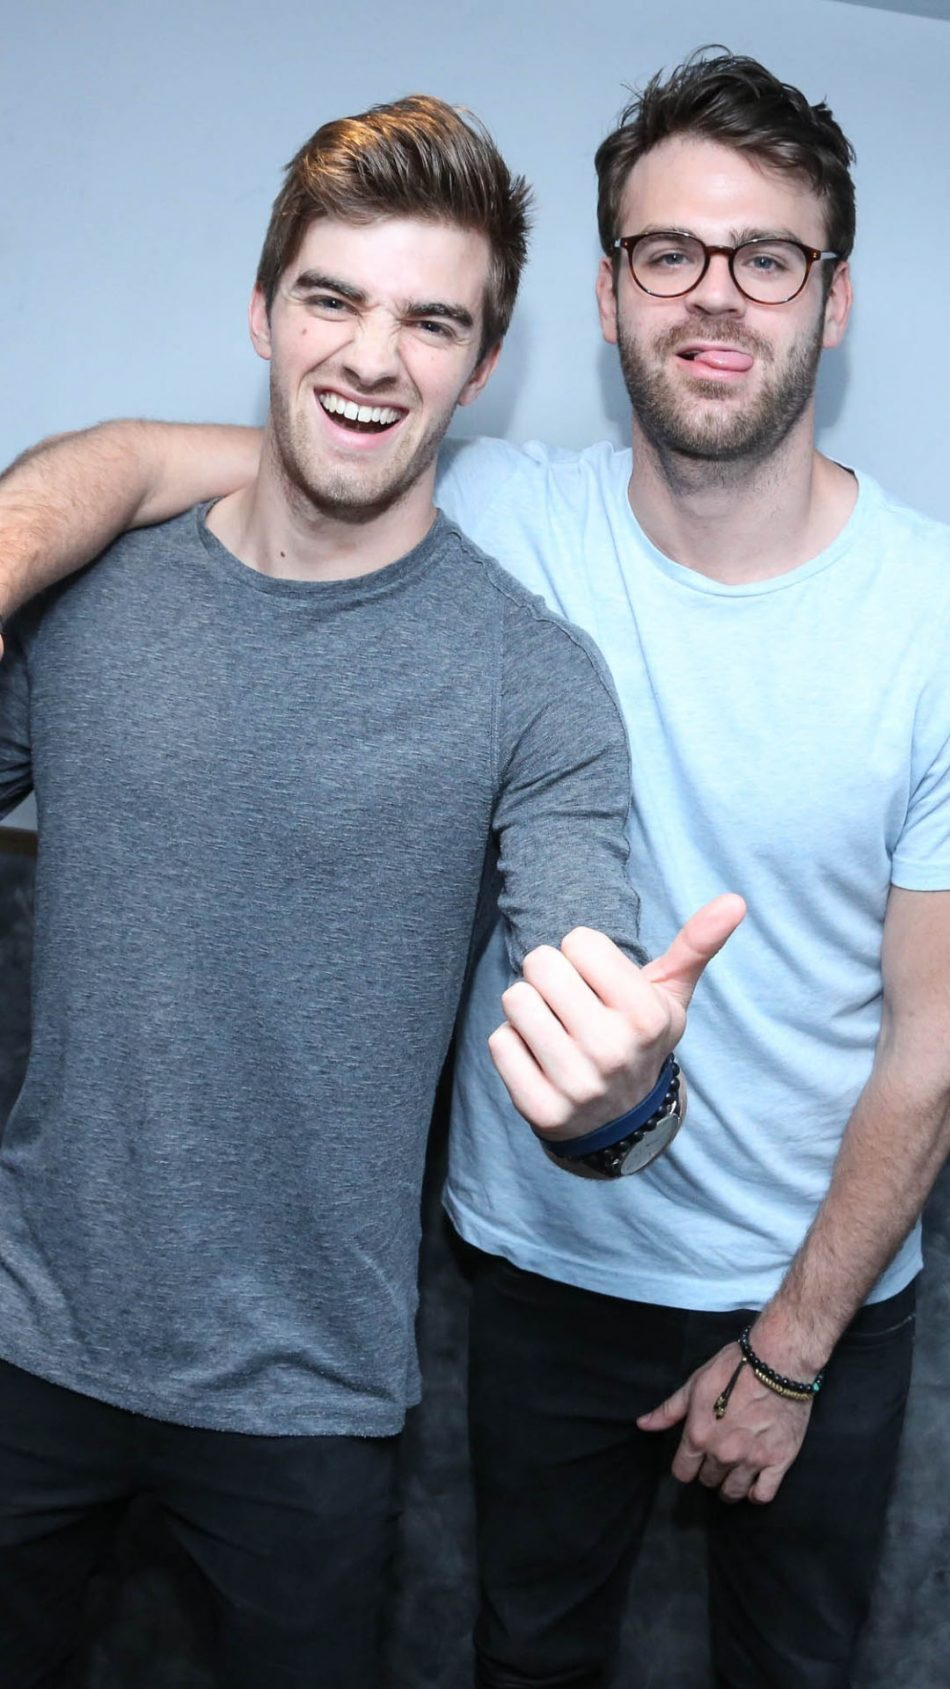 The Chainsmokers Hd Mobile Wallpaper 5 Seconds Of Summer